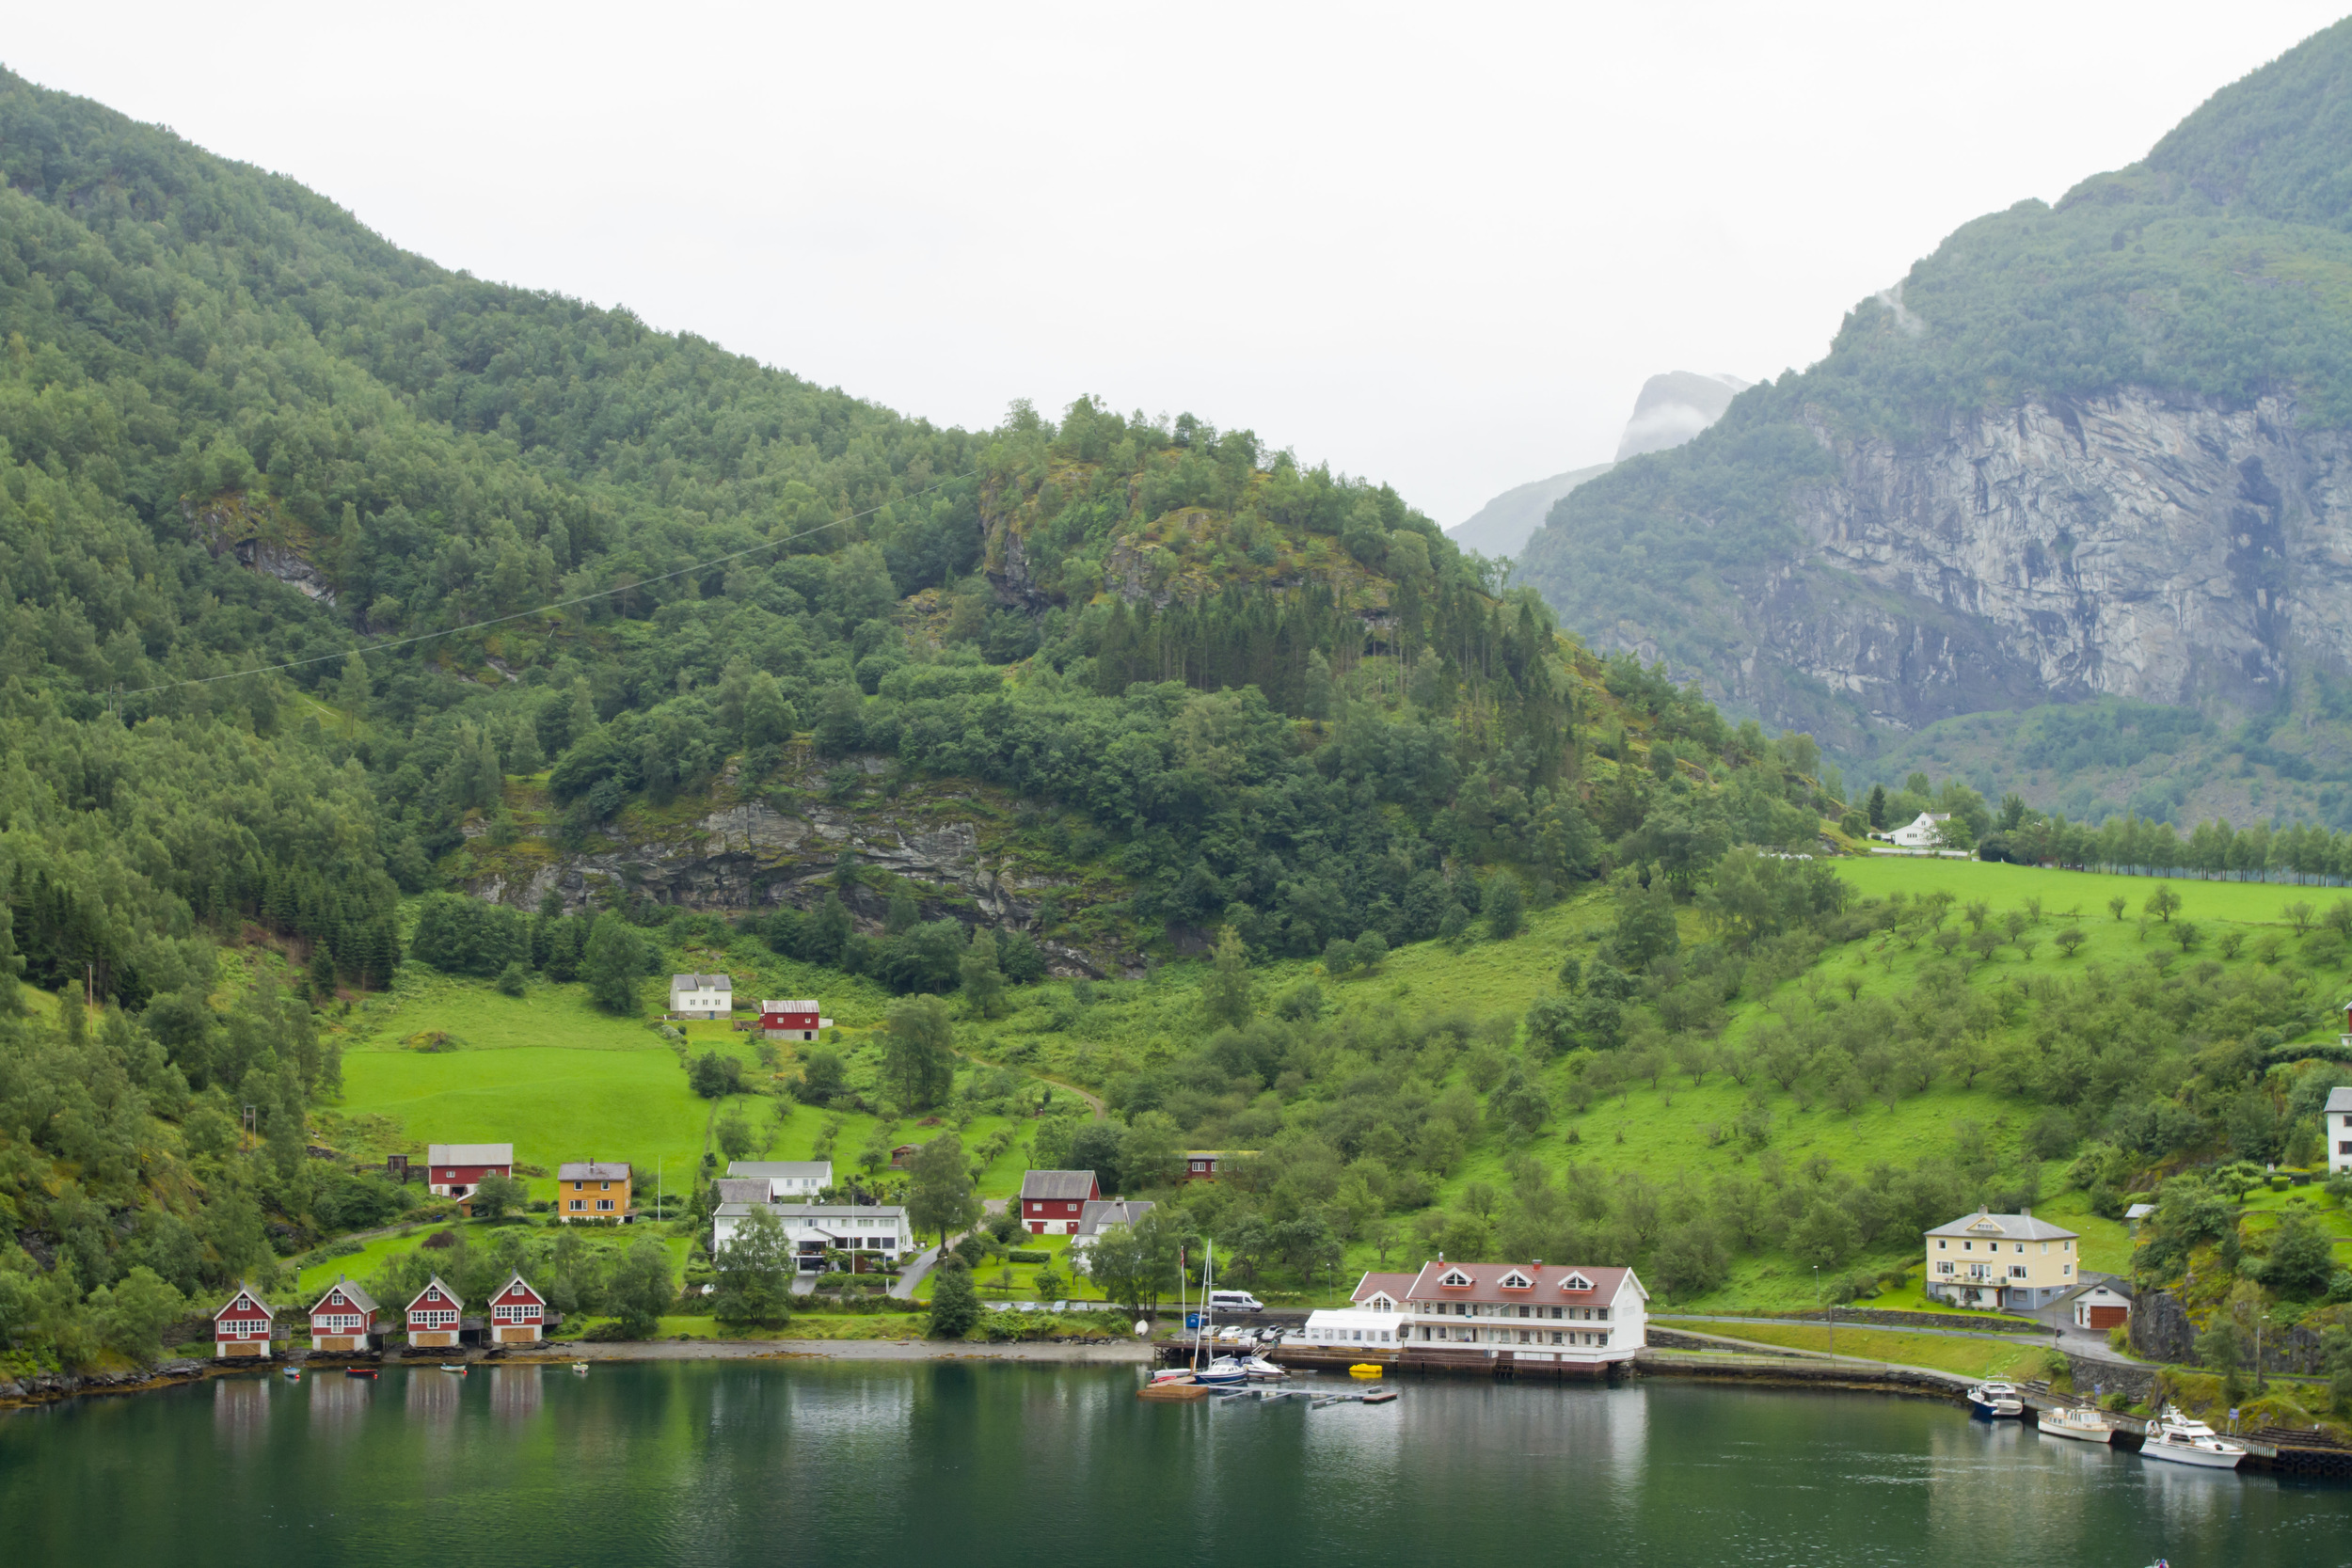 1. Small wooden cabins line the shore of the Aurlandsfjorden, dominated by the steep forested mountains in the background. The water is still, with very little activity.